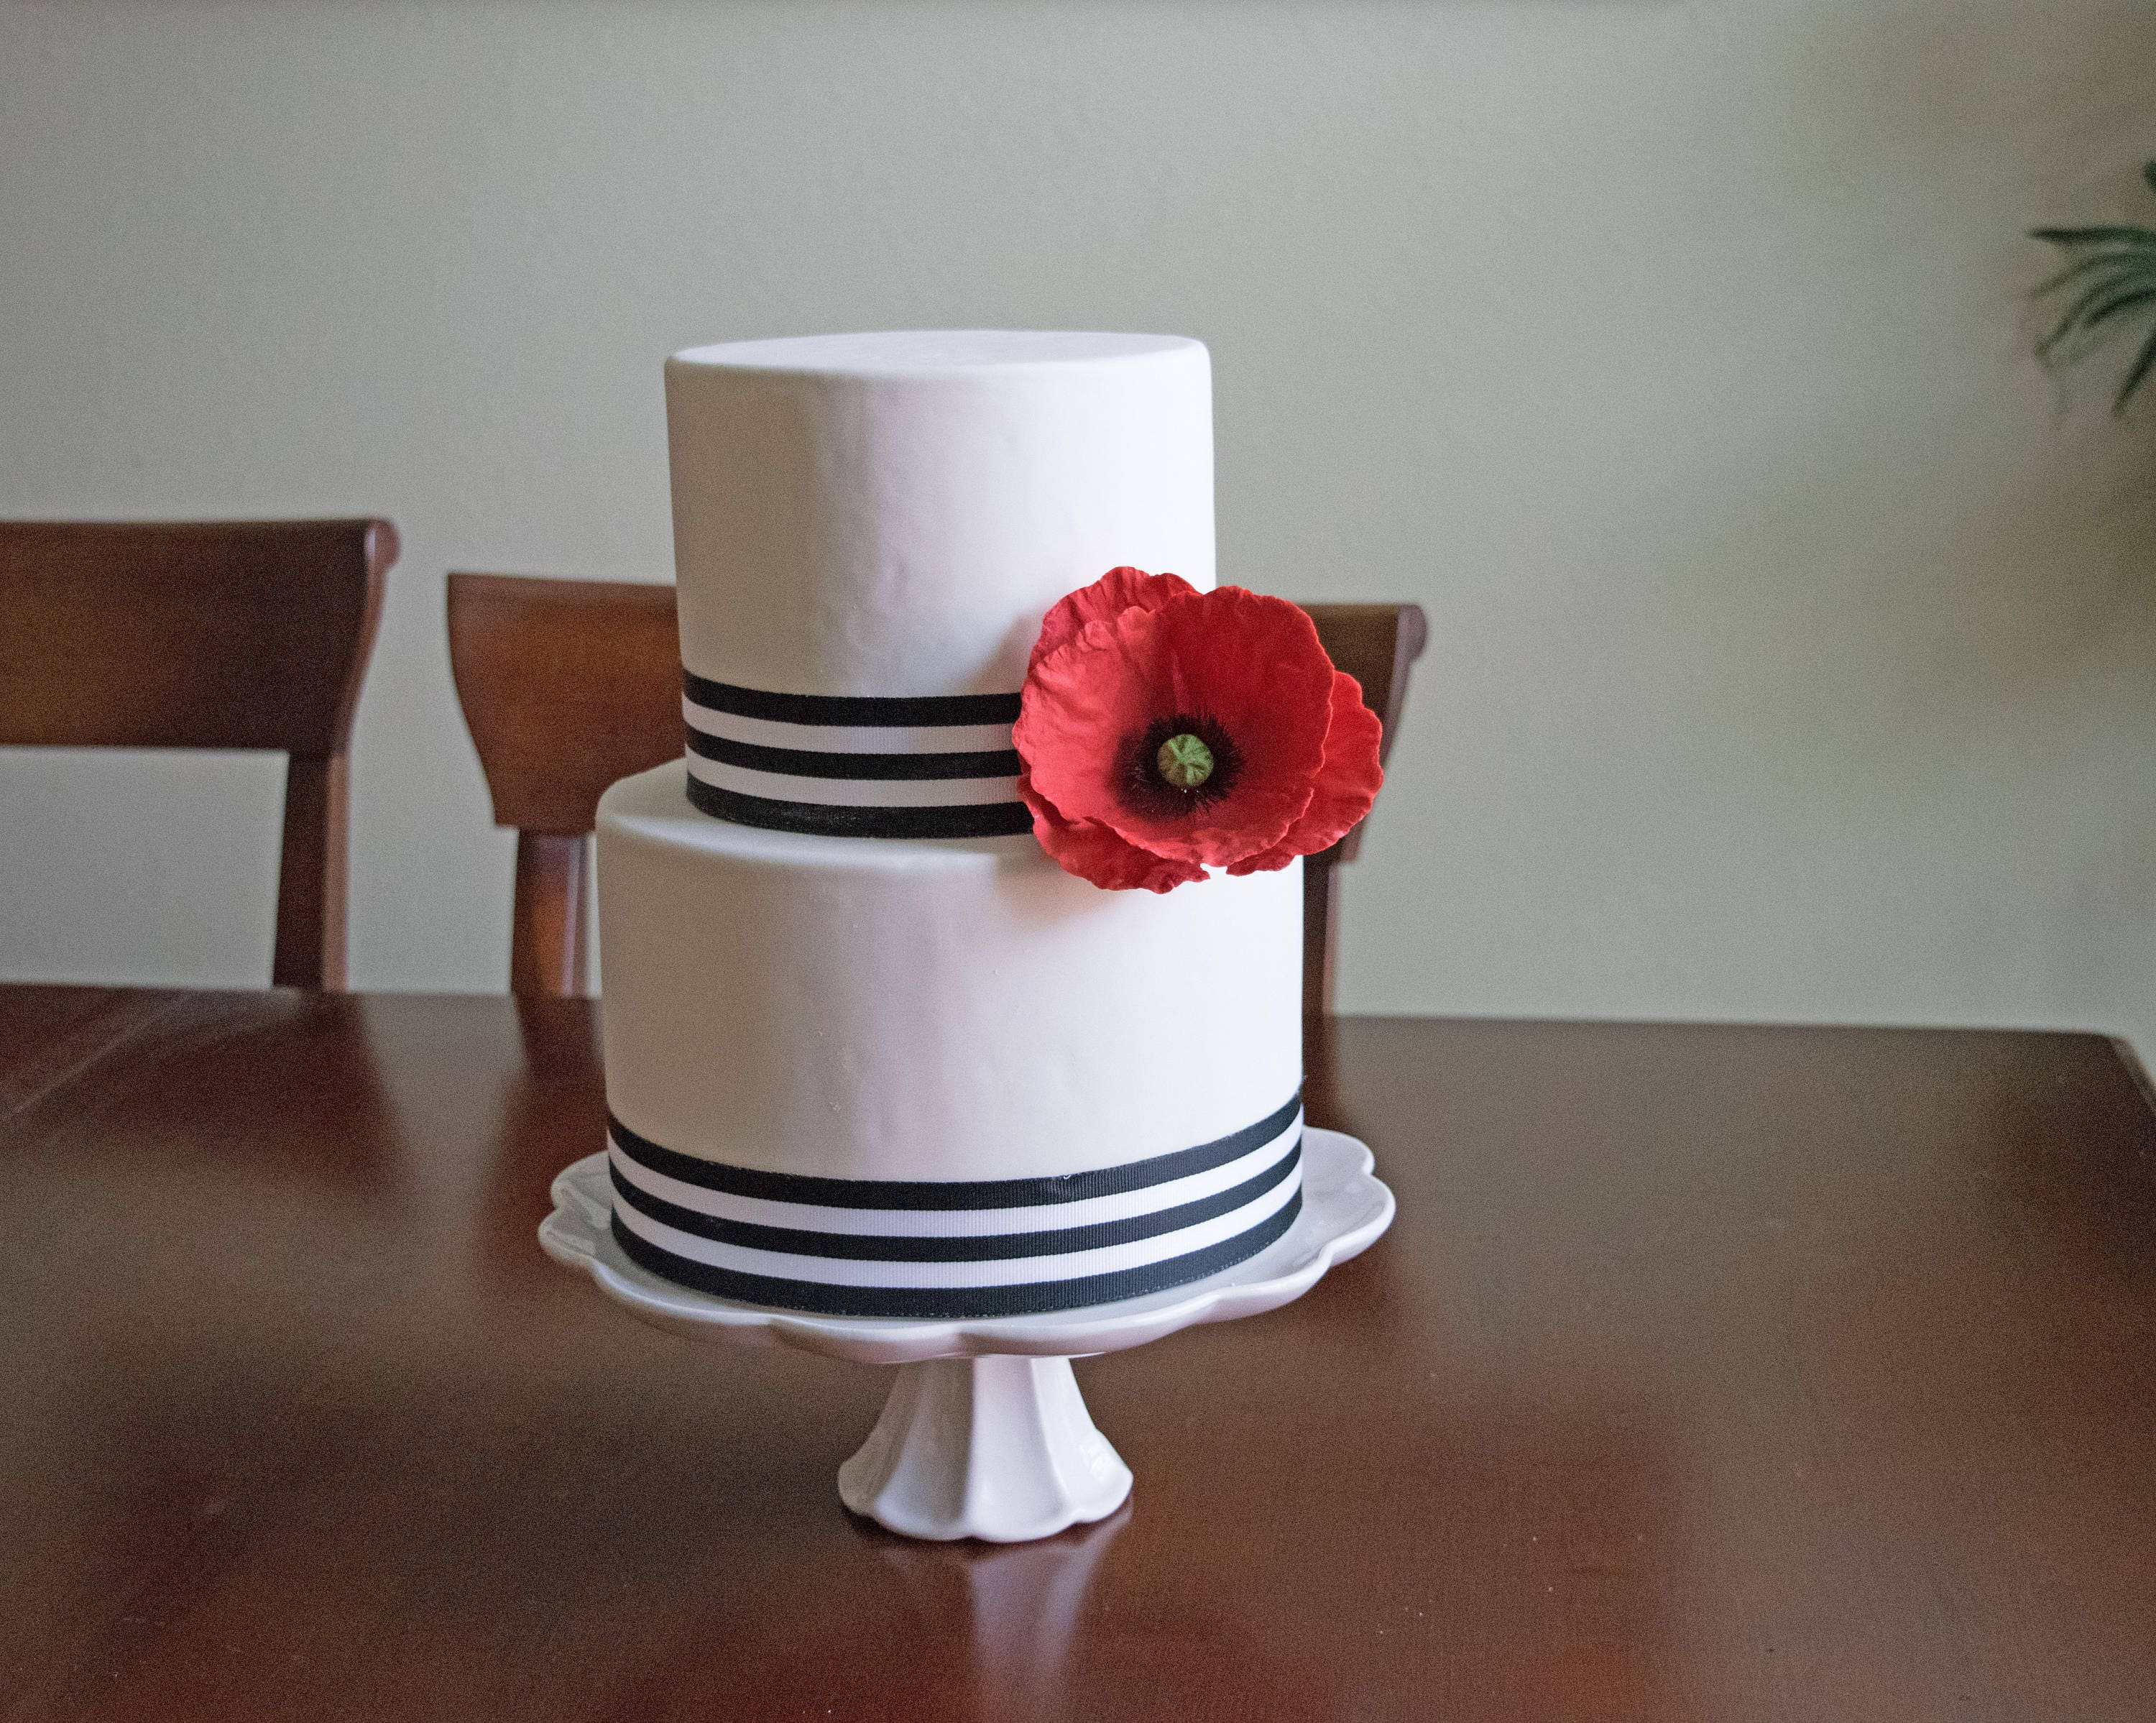 Red Poppy Sugar Flower For Wedding Cake Toppers Cake Decorations